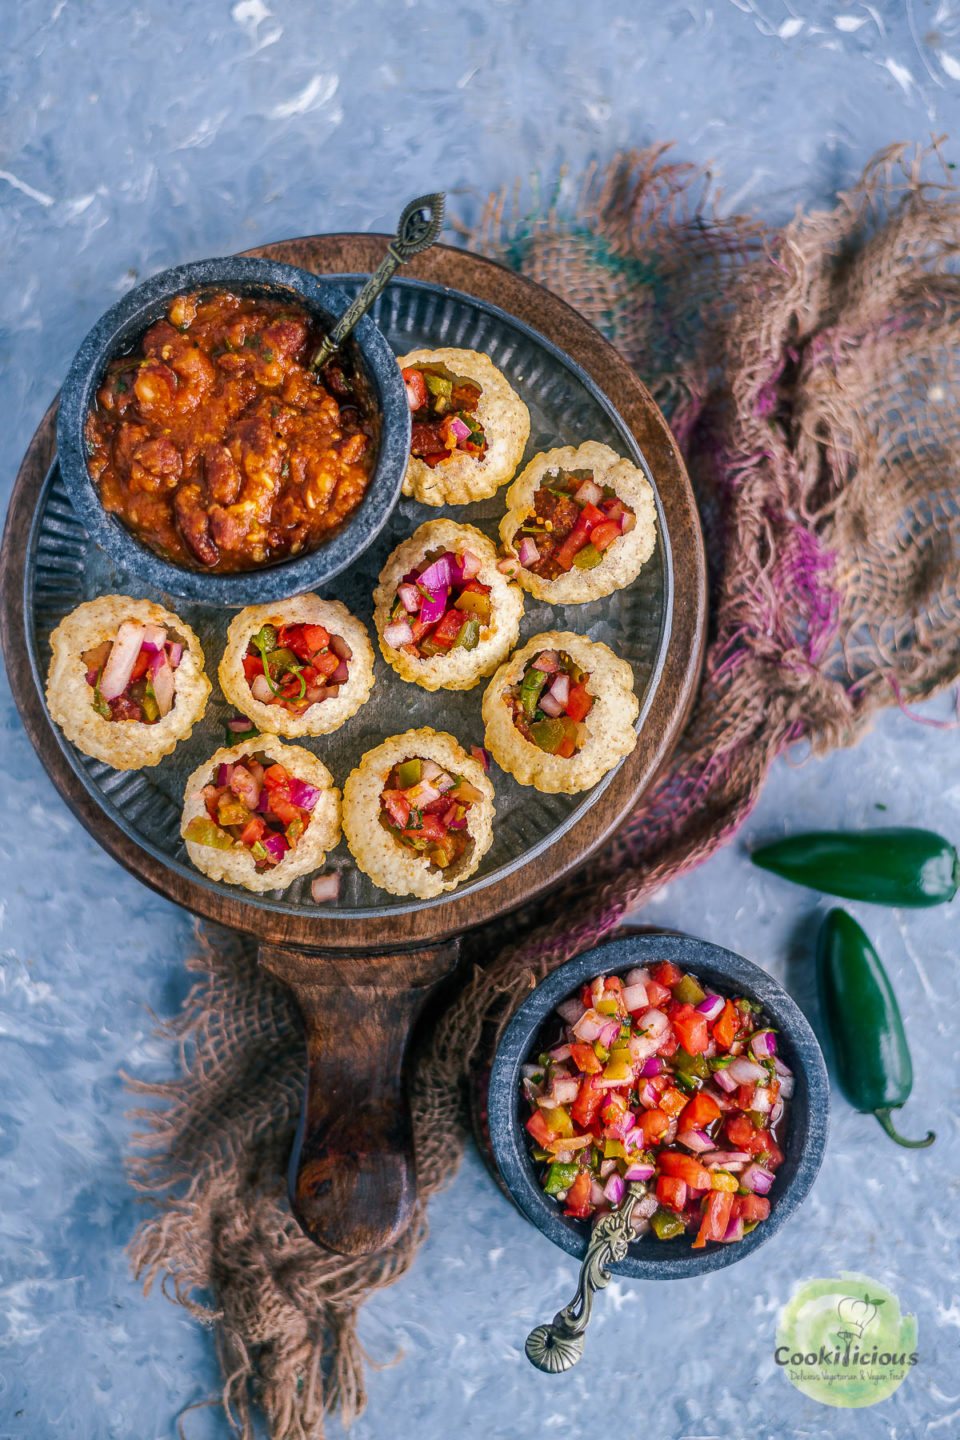 a round plate filled with Indian Mexican Pani Puri along with a bowl of beans in tomato sauce and next to it is a bowl of salsa